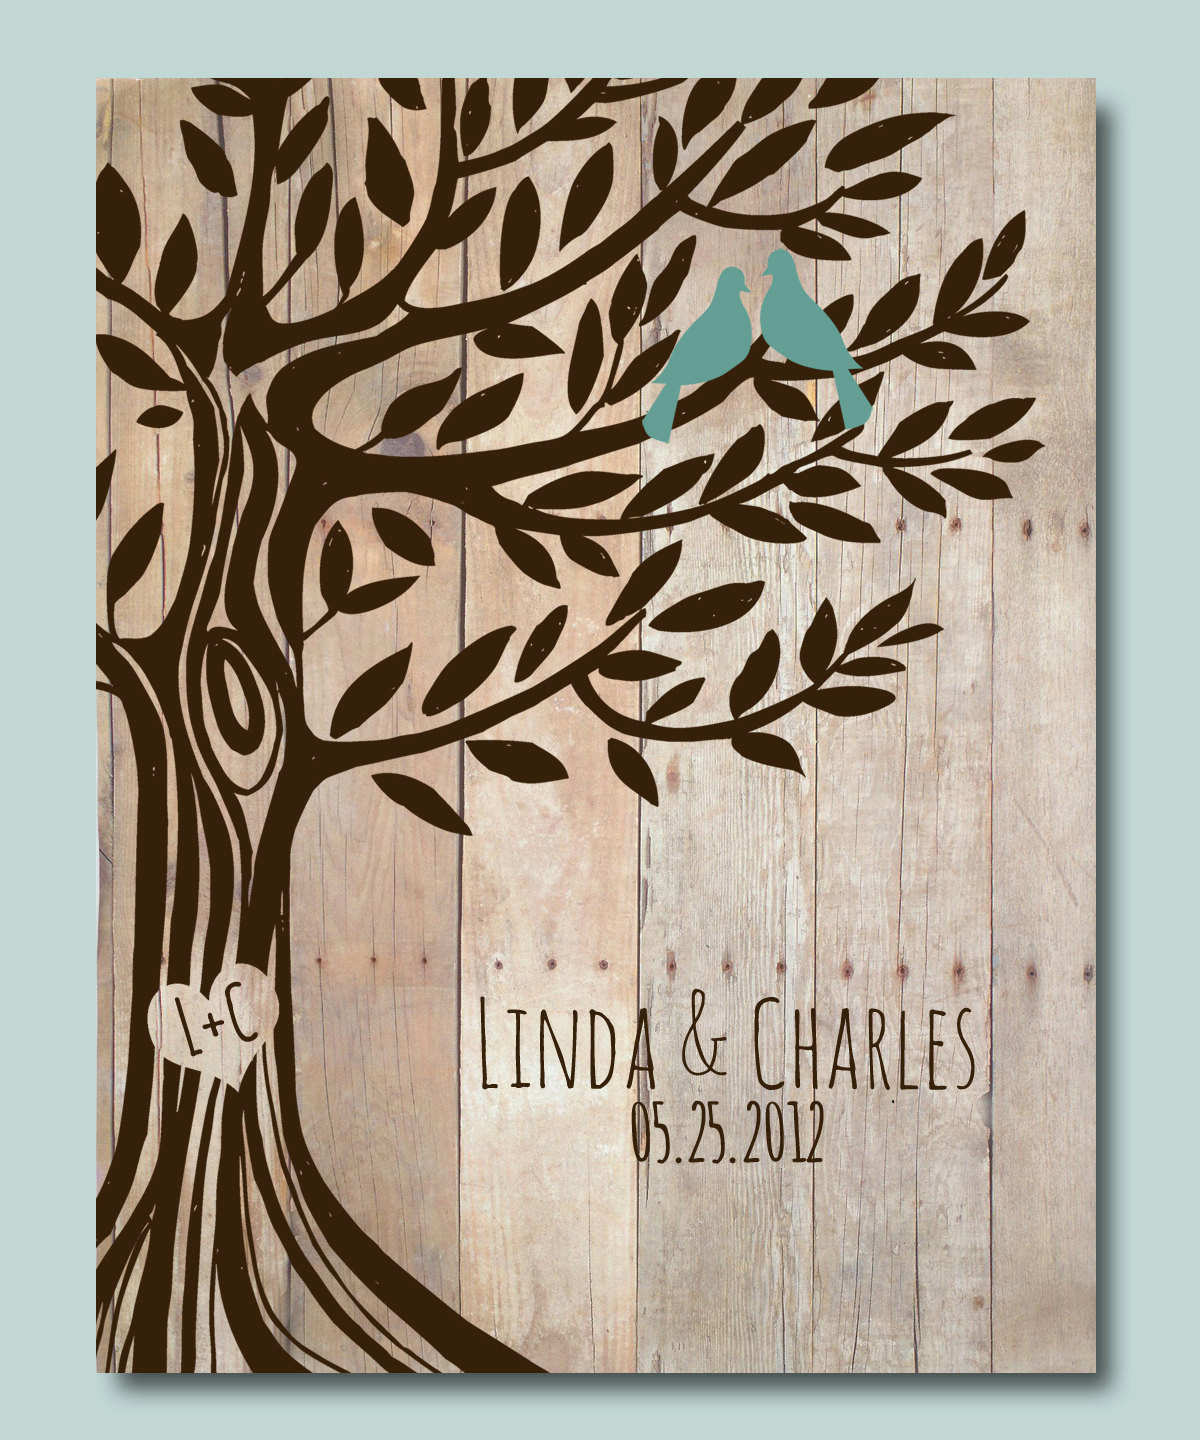 Best ideas about Personalized Wedding Gift Ideas . Save or Pin Personalized Wedding Gift Love Birds Tree Engagement t Now.